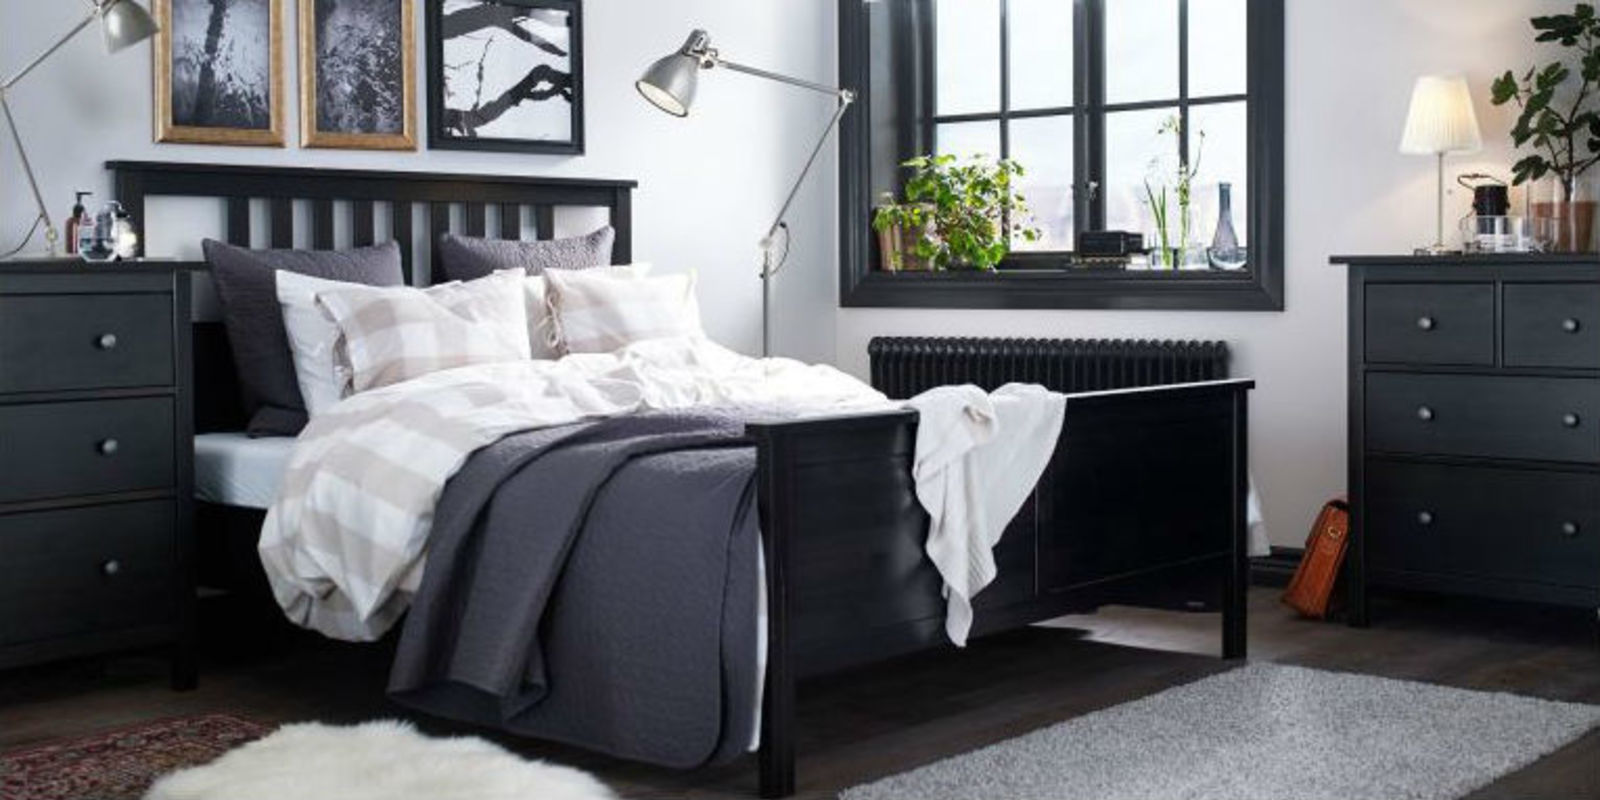 dit betekenen de namen van je favoriete ikea meubels. Black Bedroom Furniture Sets. Home Design Ideas